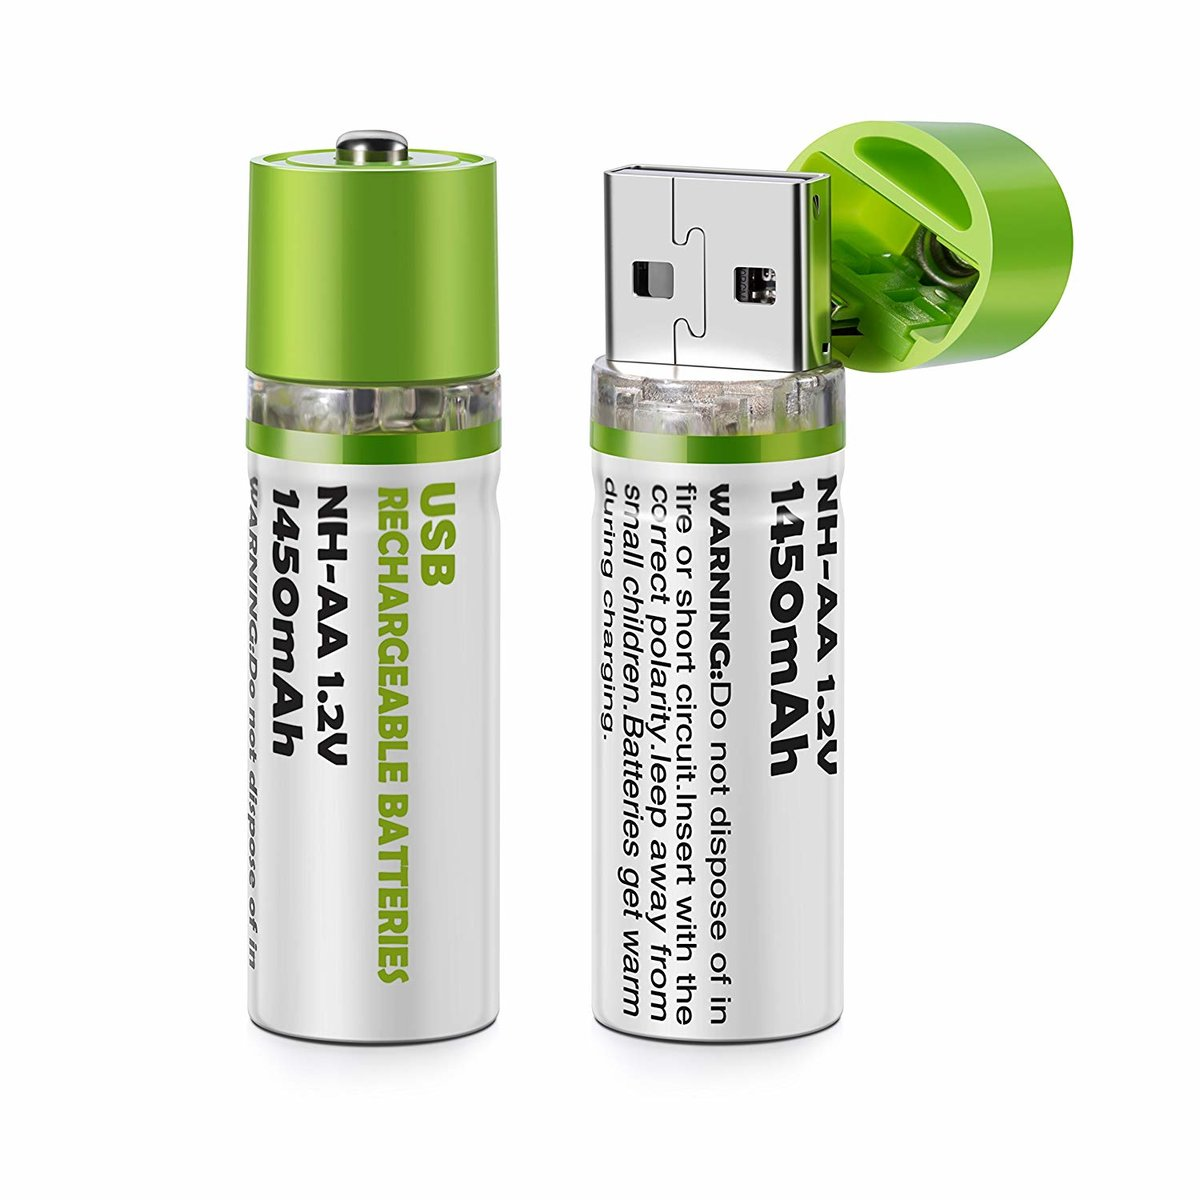 【Pack of 2】USB Rechargeable AA Batteries Cell NH-AA 1.2V 1450mah